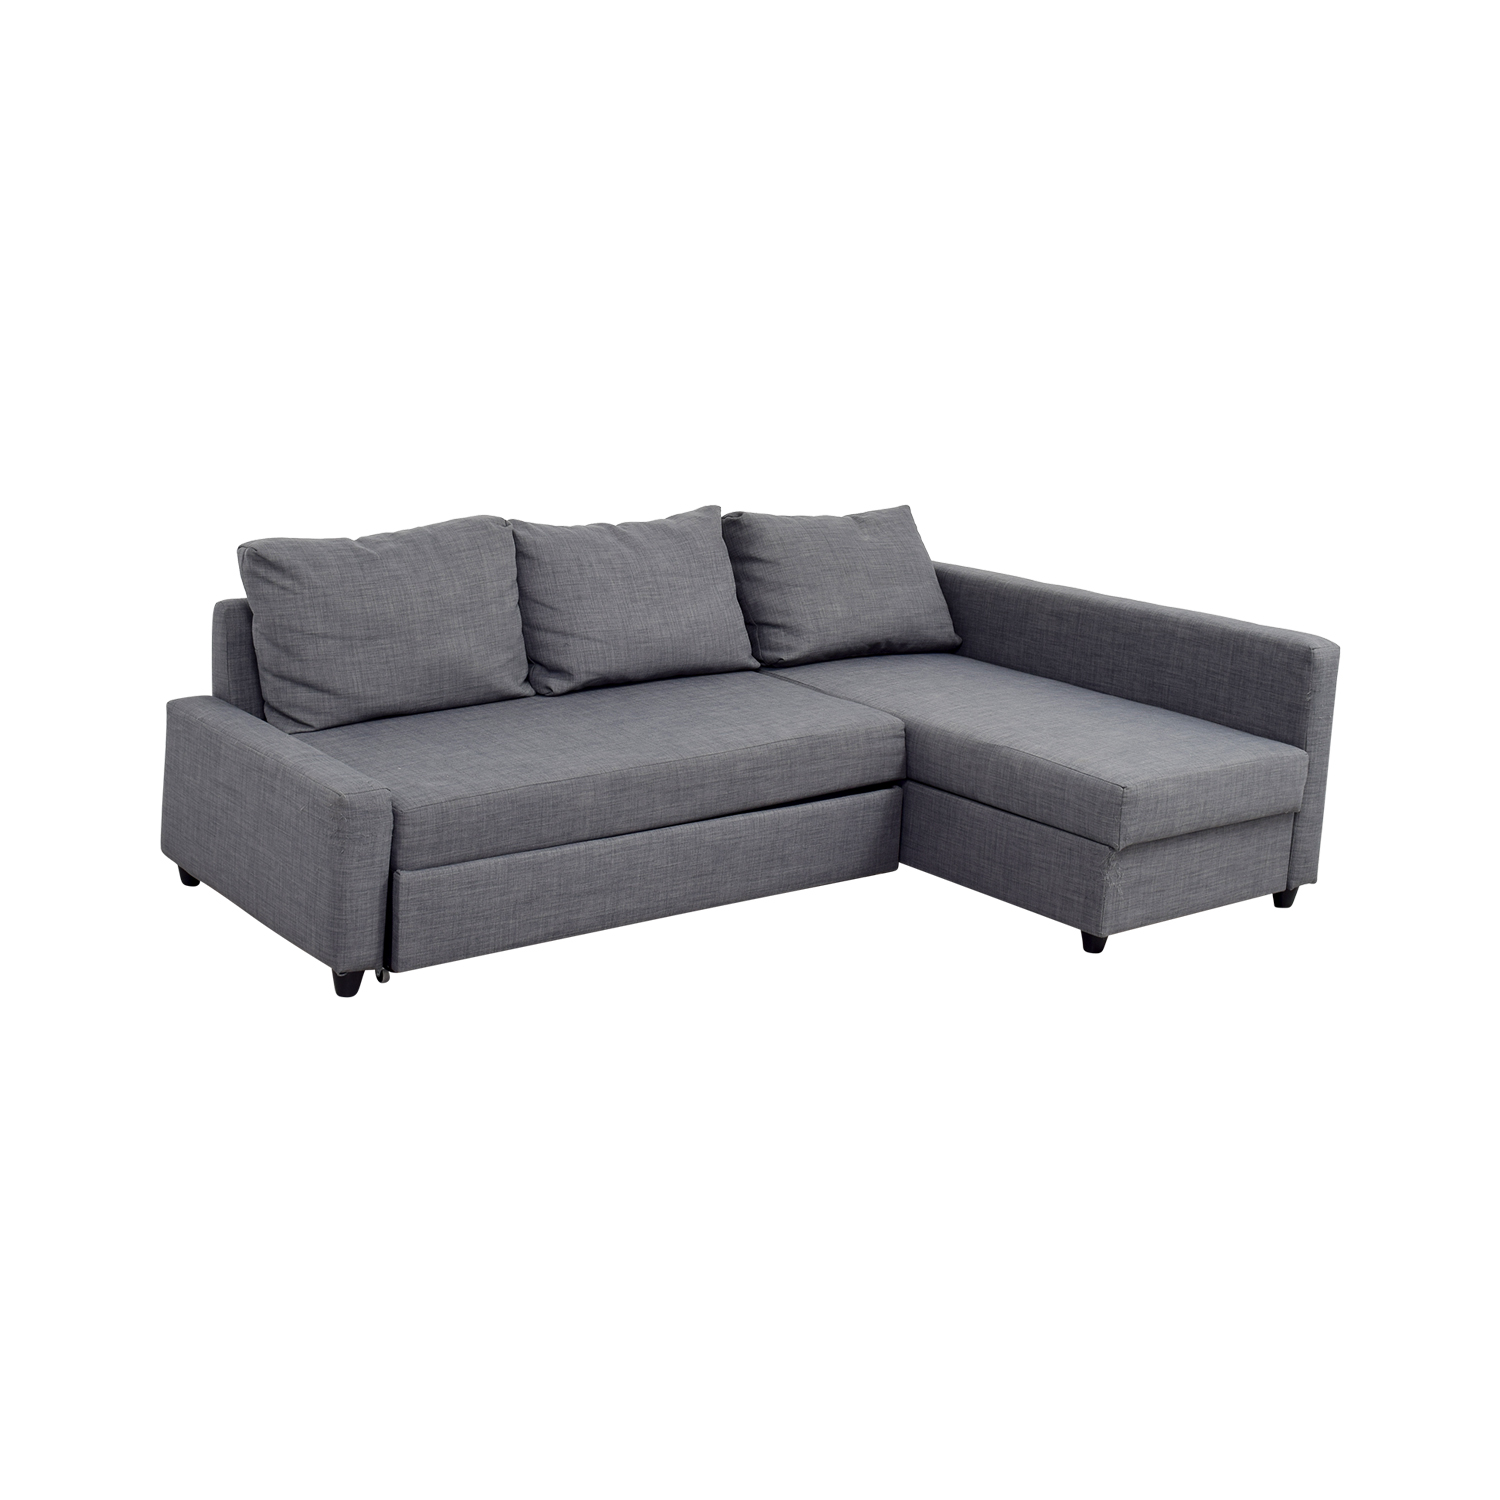 Ikea Grey Sleeper Chaise Sectional